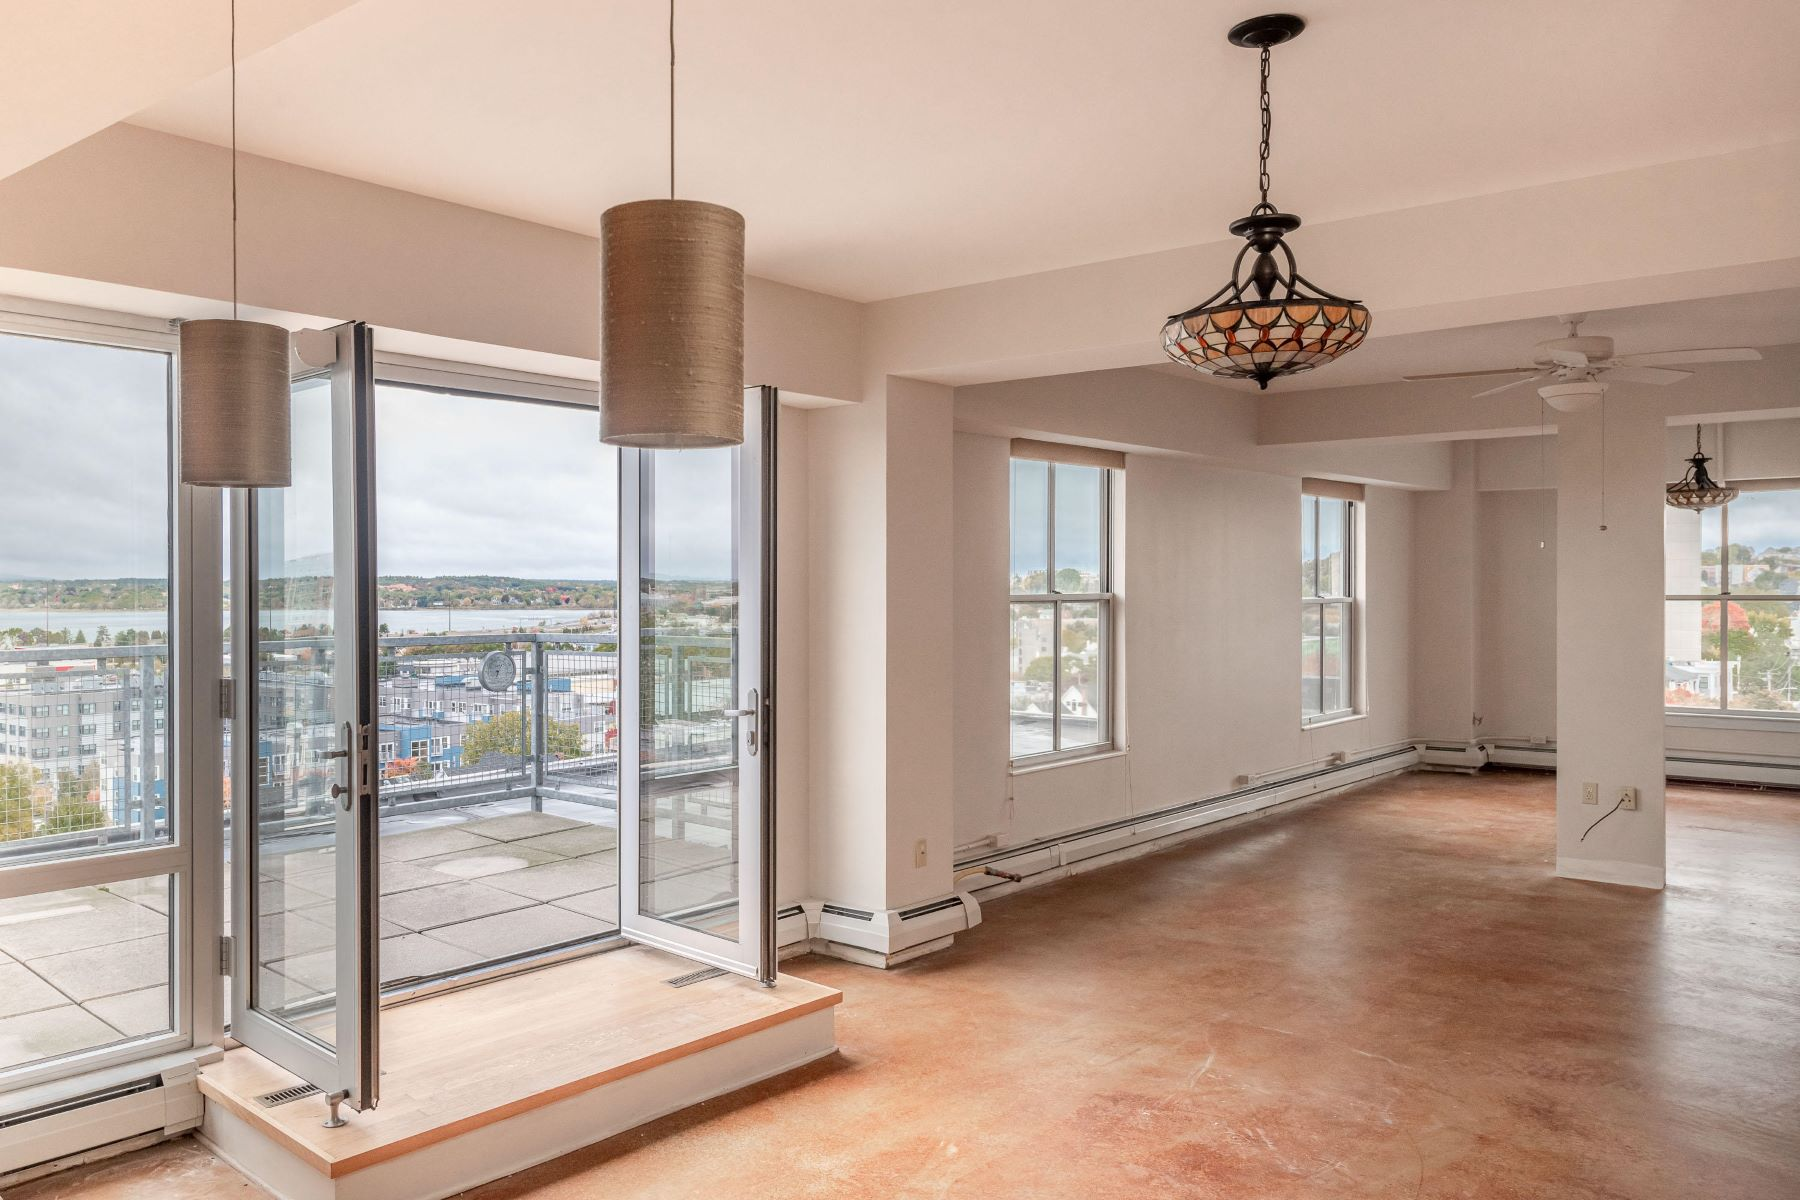 Condominiums for Sale at 21 Chestnut Street 703 Portland, Maine 04101 United States